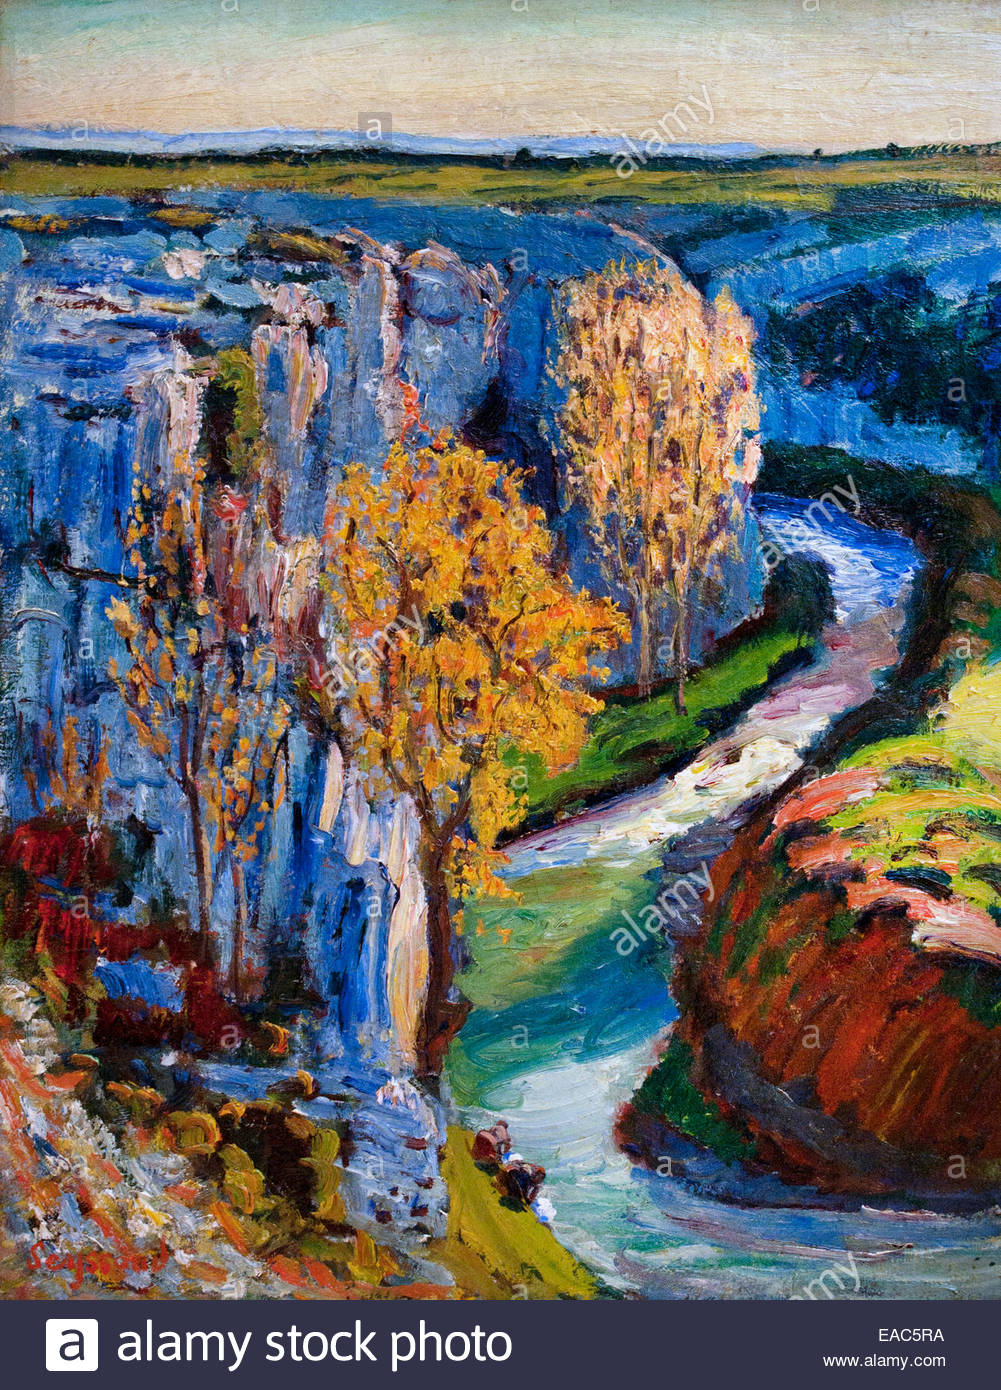 Fall River (Touloubre) by René SEYSSAUD 1867-1952 France French Stock Photo